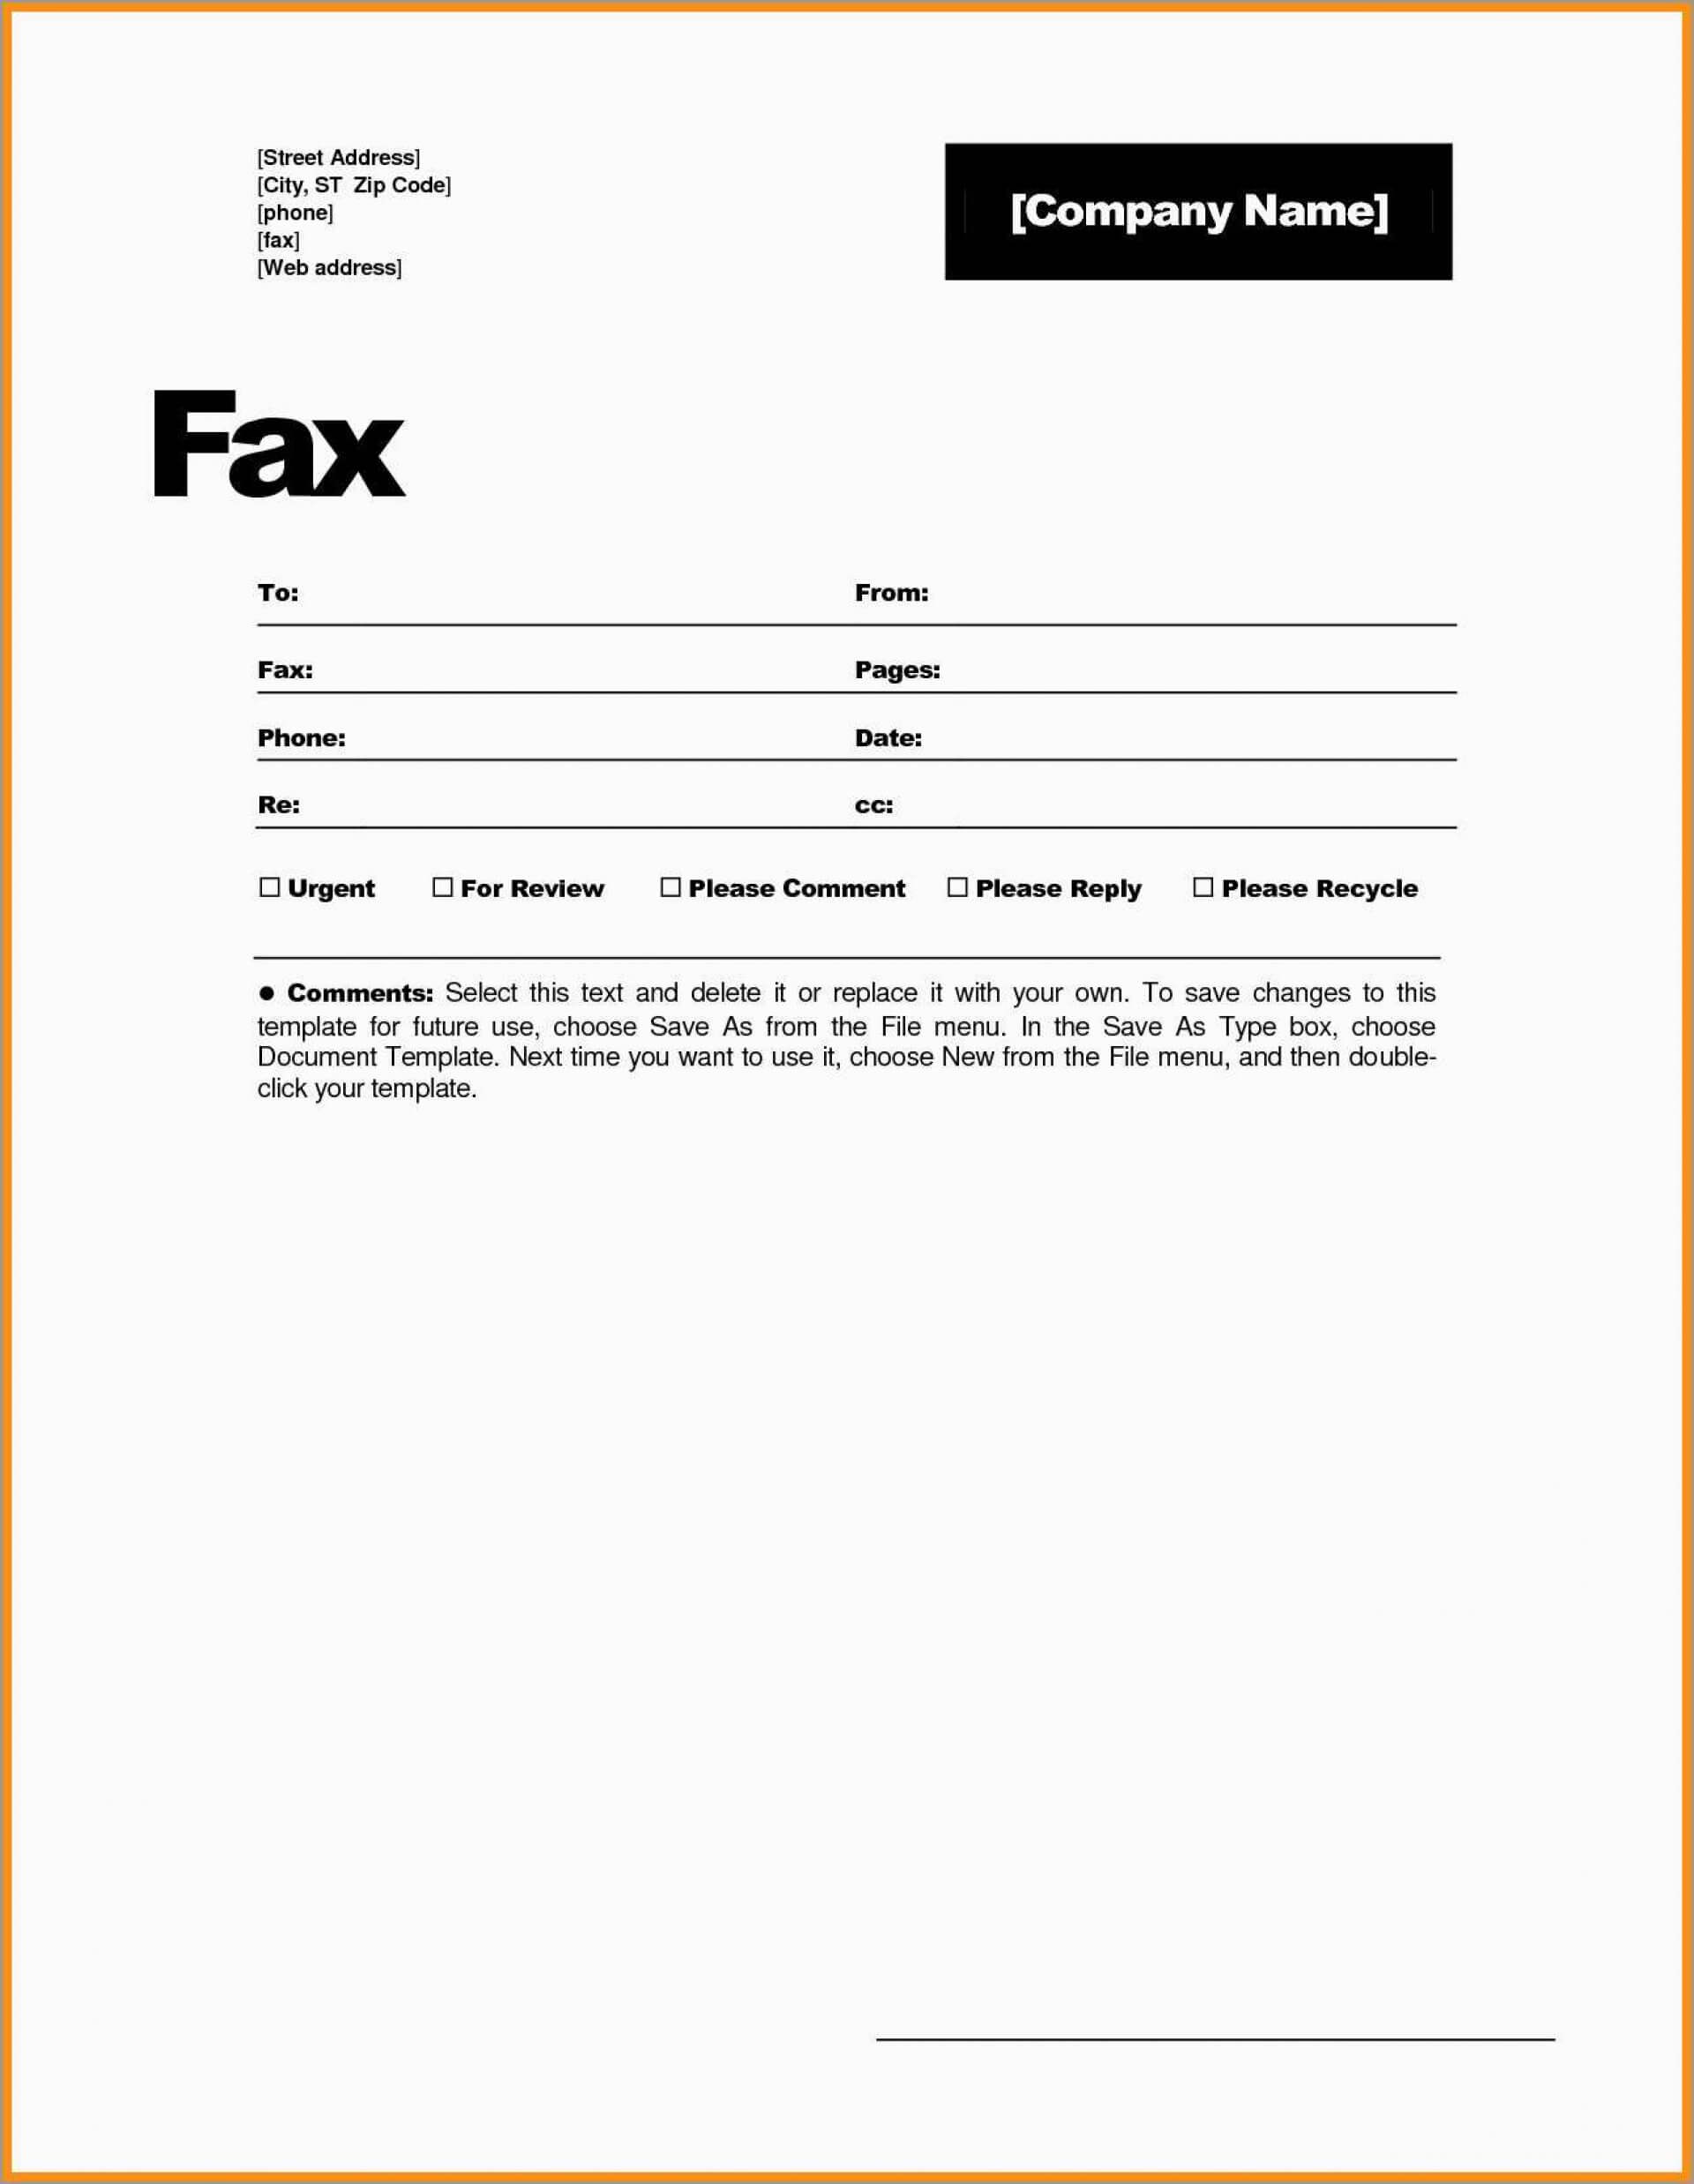 030 Fax Cover Sheet Template Free Word Stupendous Ideas Page With Fax Template Word 2010